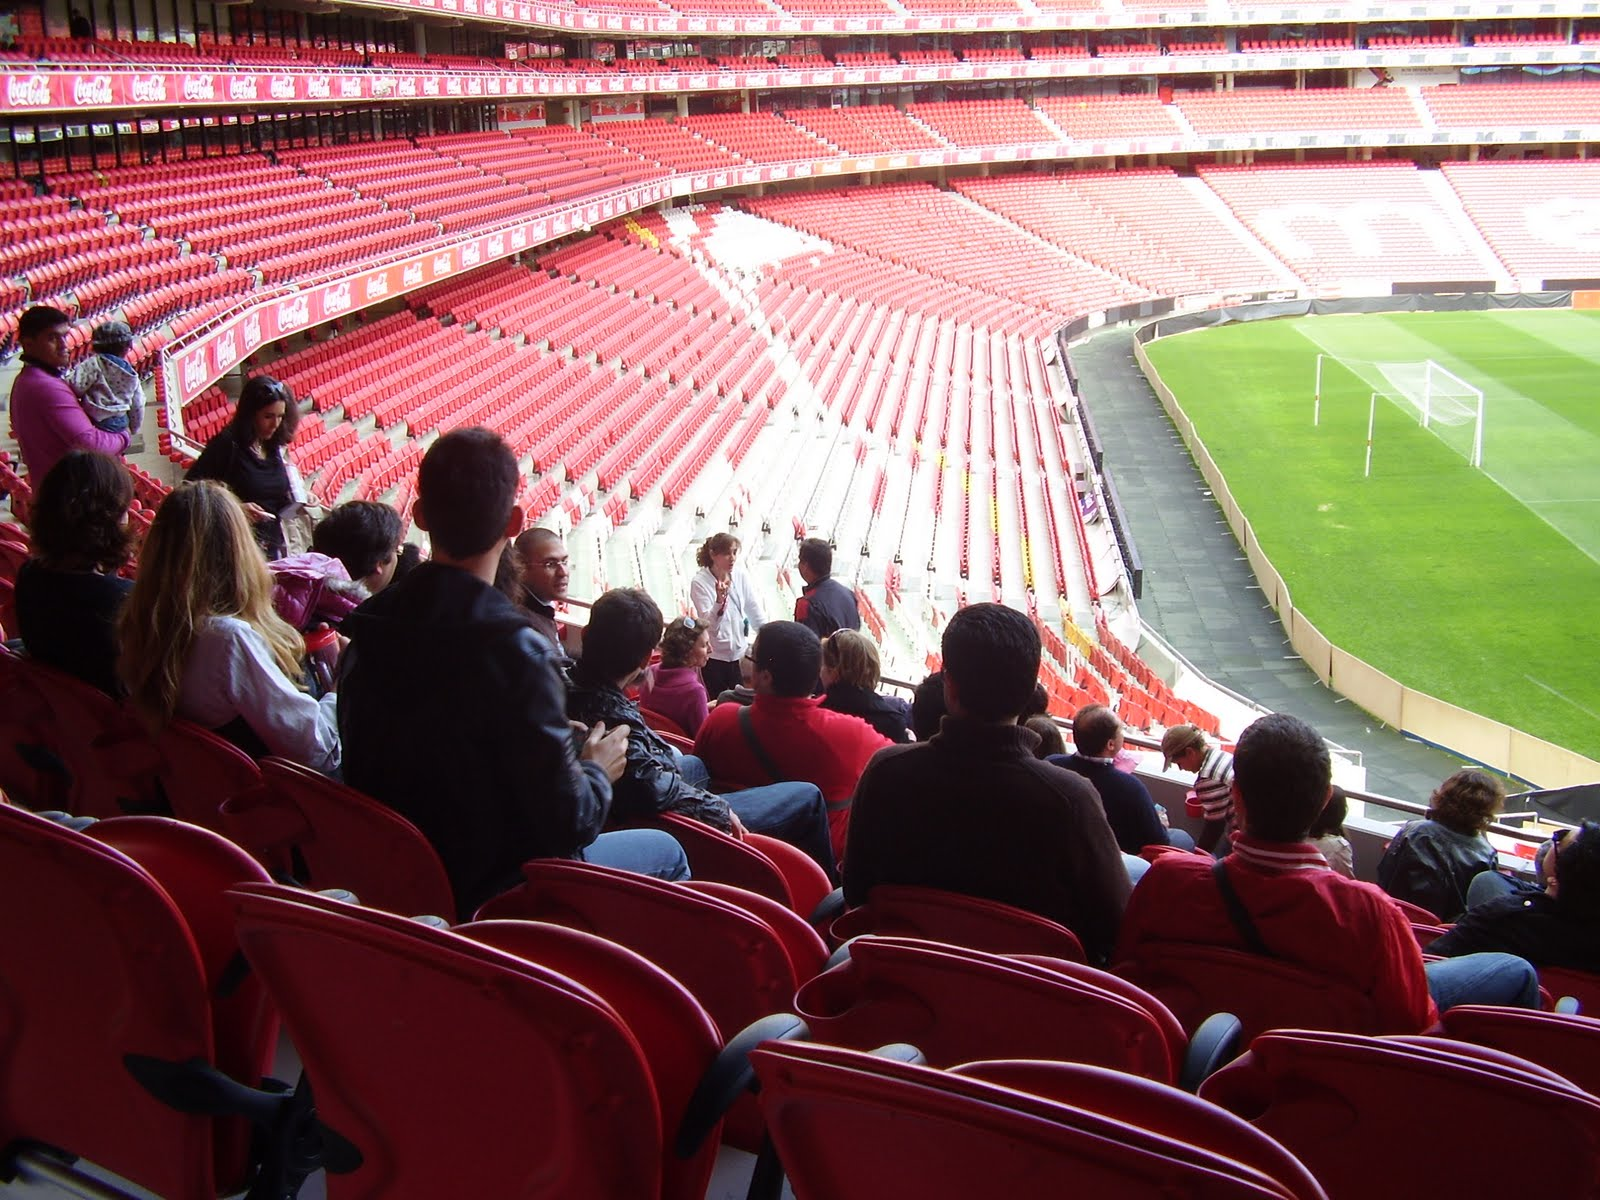 Catenaccio 2 sport lisboa e benfica fans twitter meeting for Piso 0 estadio da luz